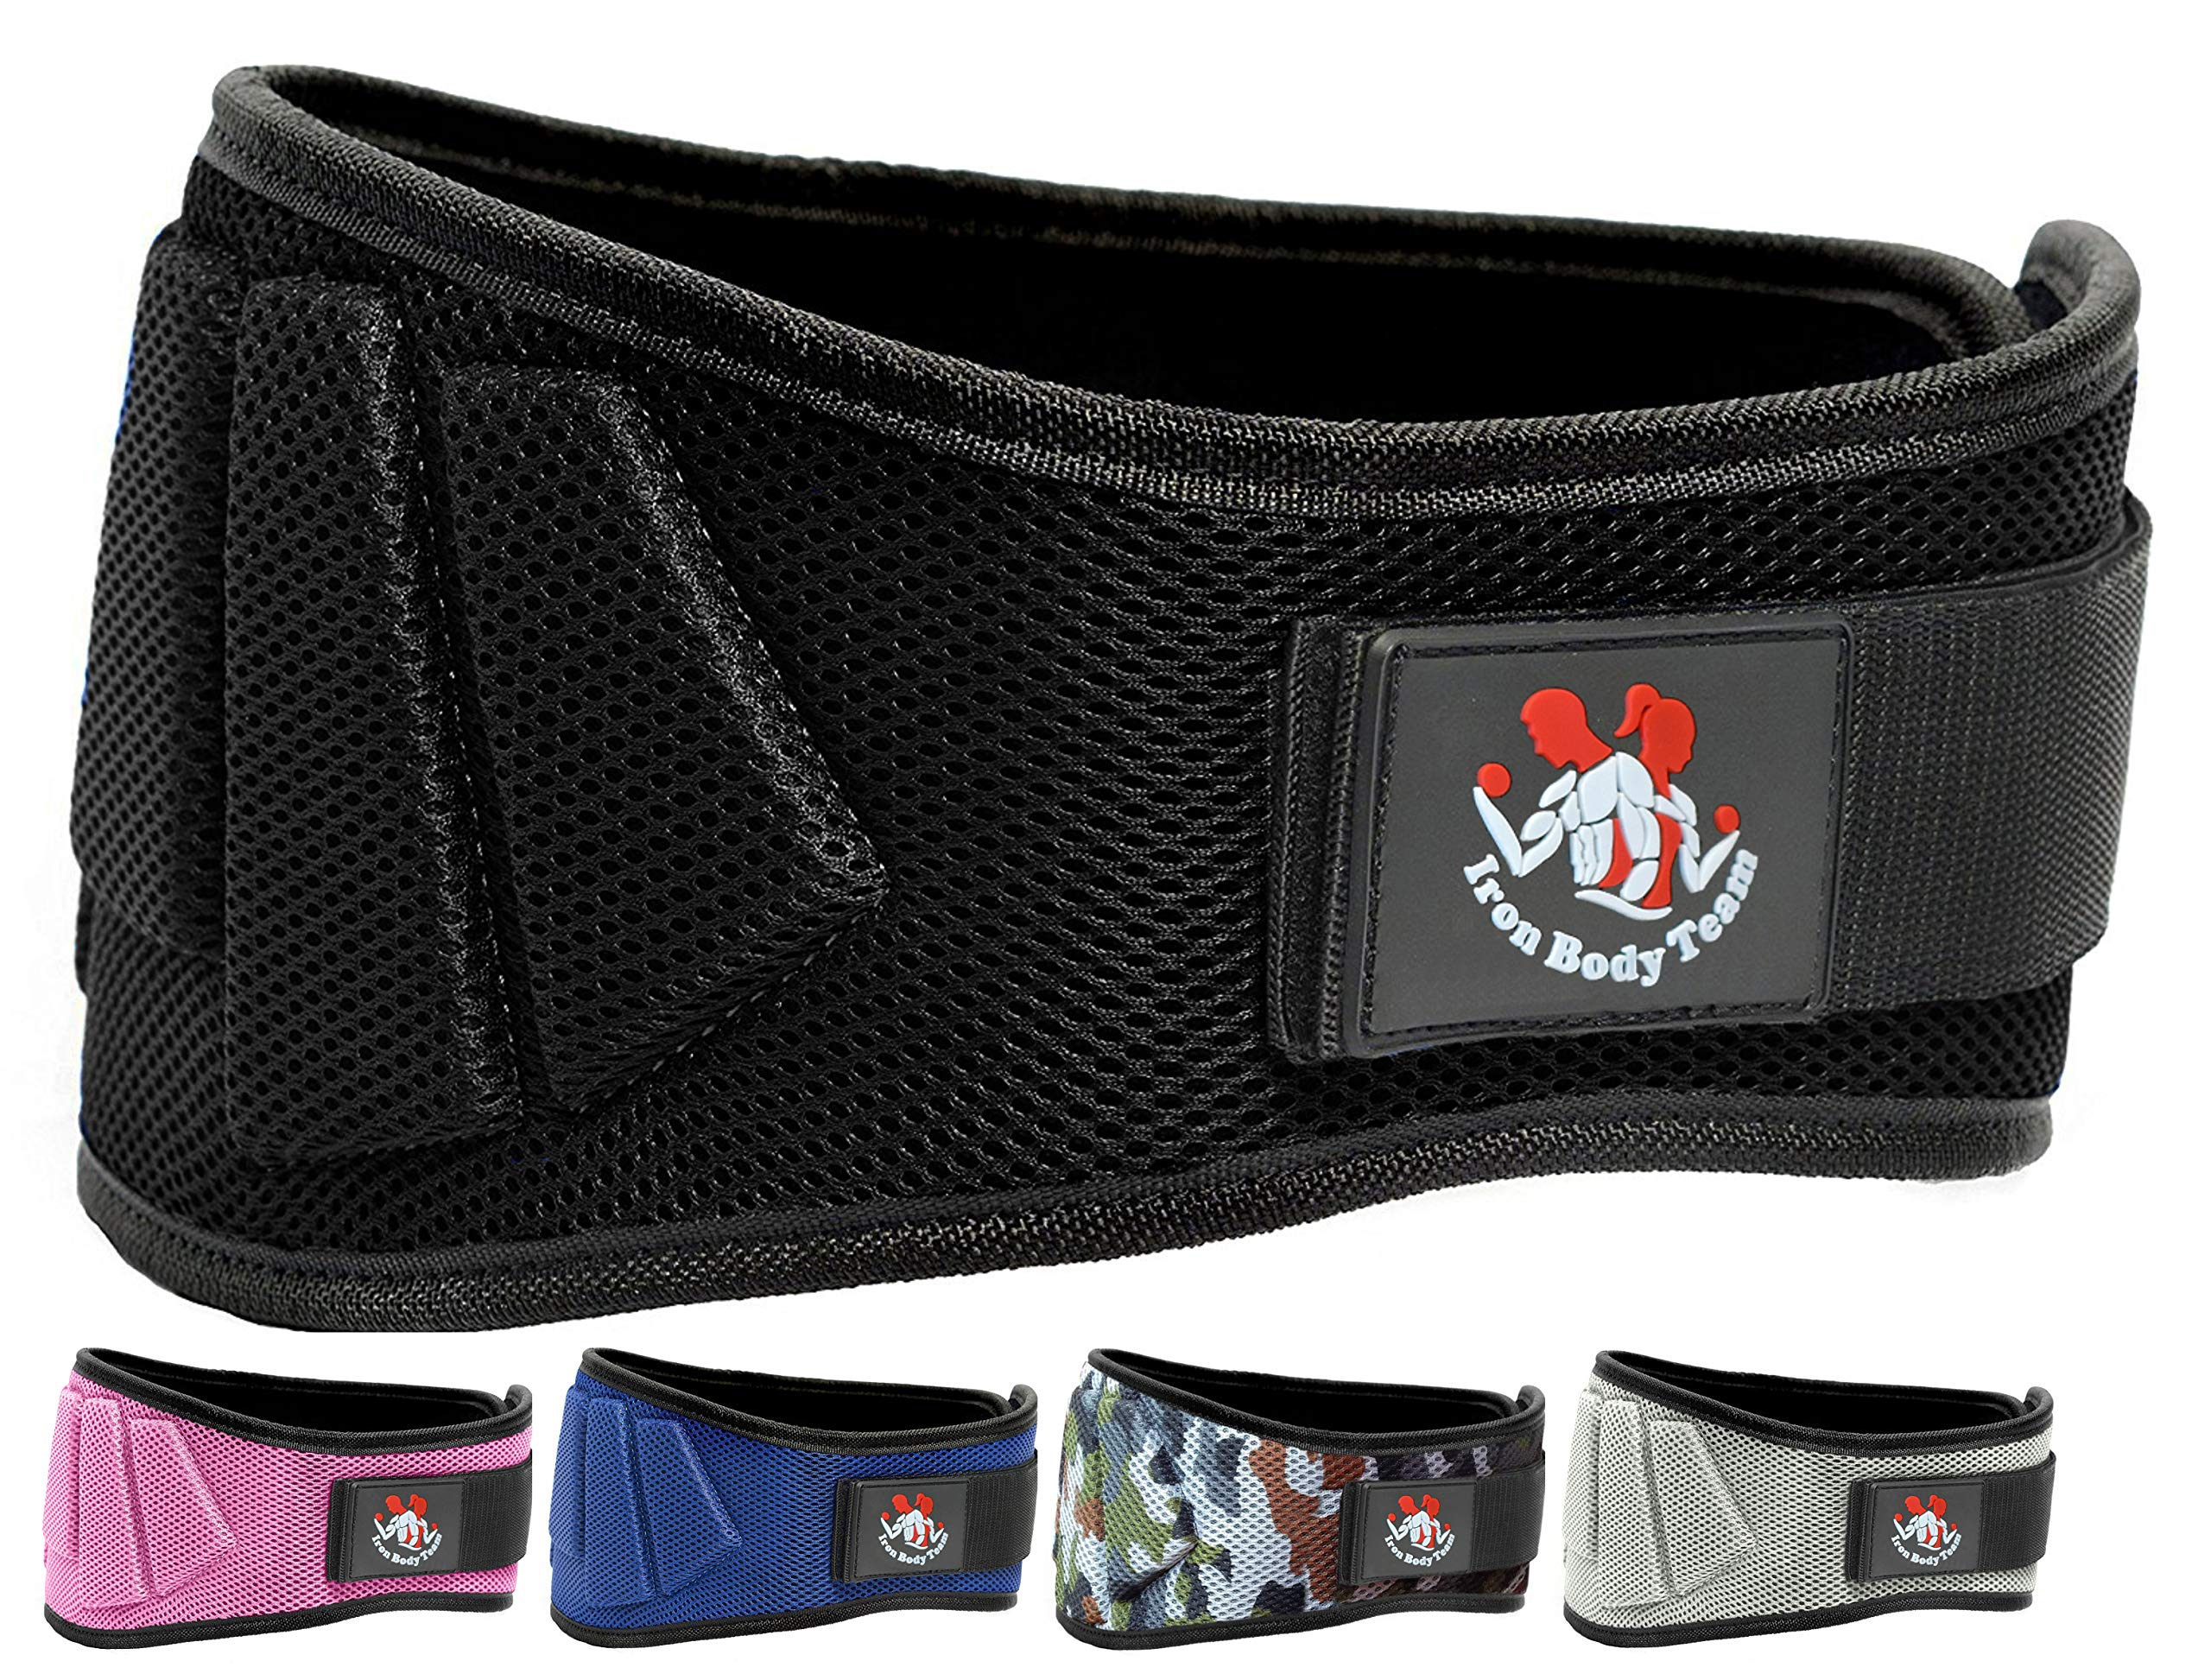 Iron Body Team Fully Adjustable Weightlifting Belt | Thick Lower Back & Core 6 inch Support for Men & Women | (Black,XS)